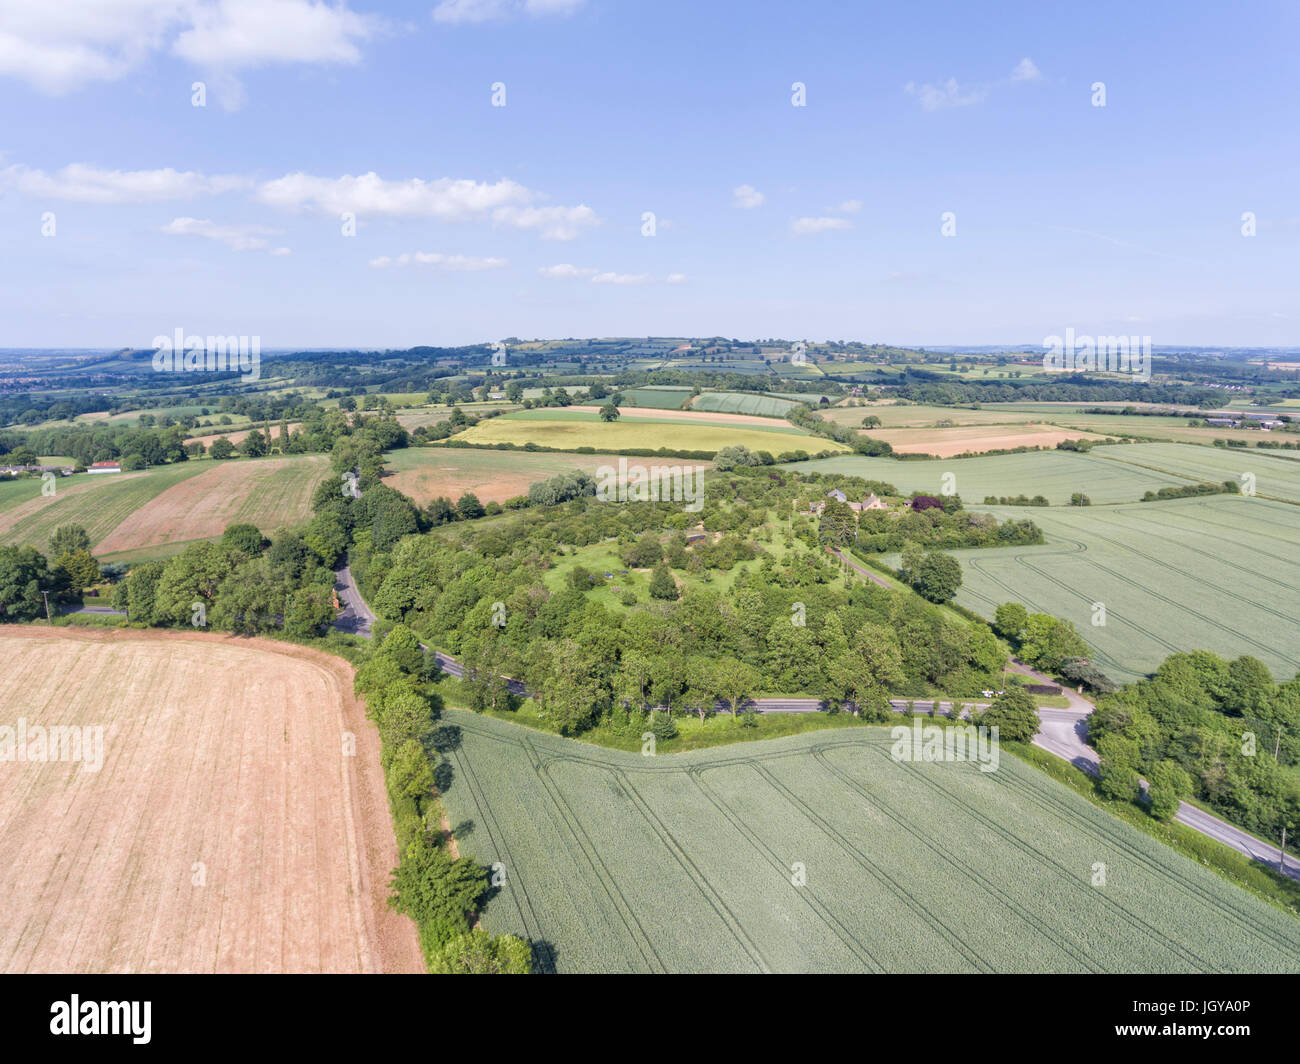 Aerial view of agriculture farm land with green wheat and ploughed fields, small village, in an English rural countryside, - Stock Image